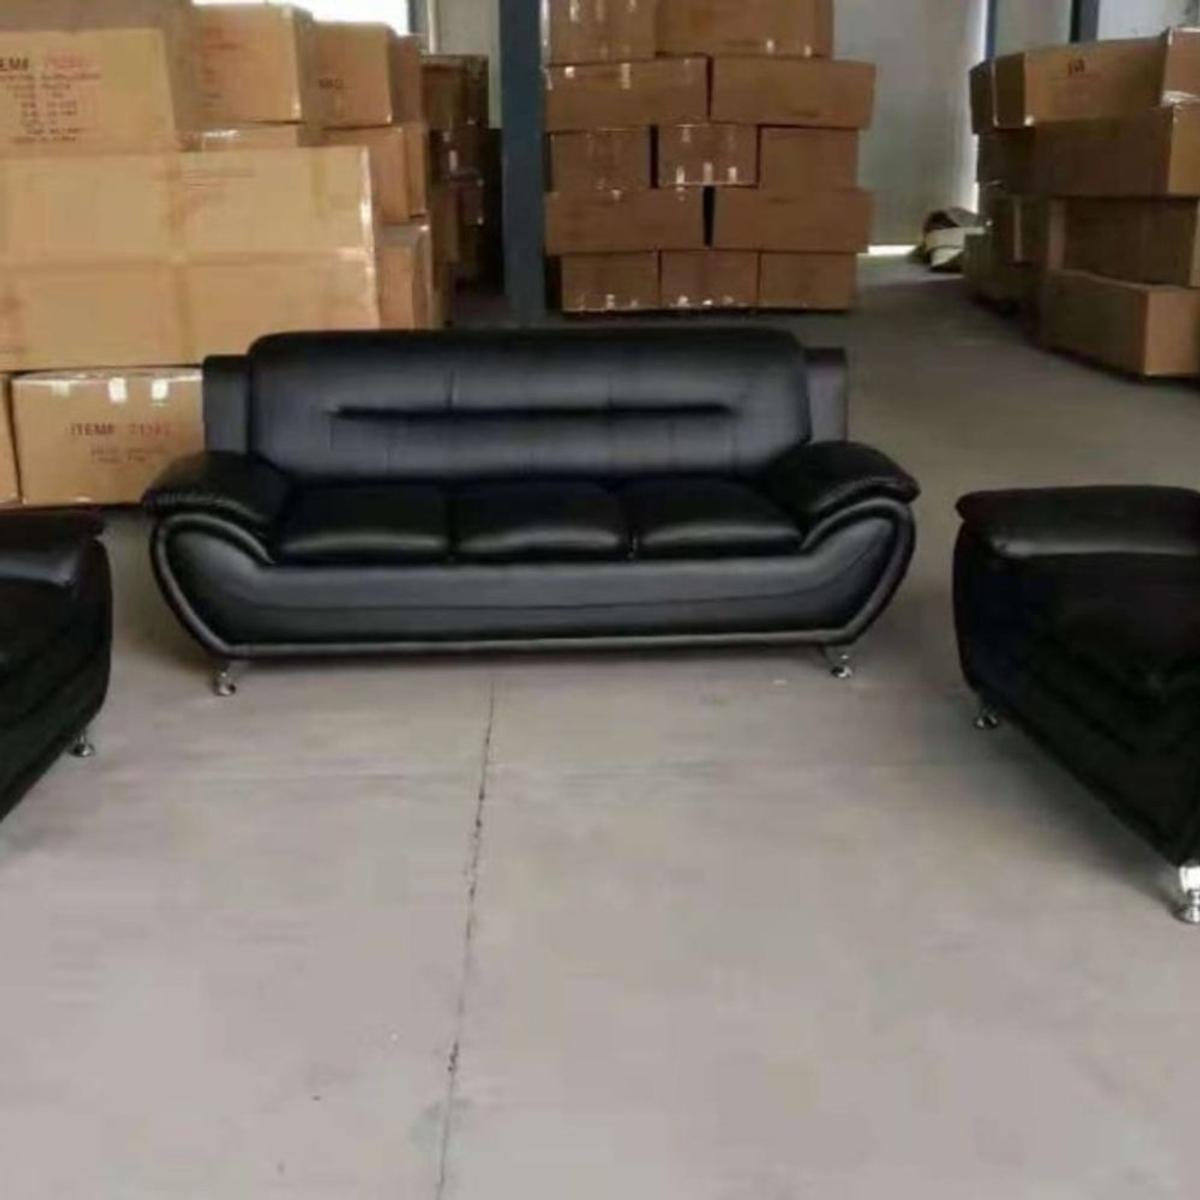 3 2 1 Modern Leather Sofa Set In Pa34at Paisley For 499 00 For